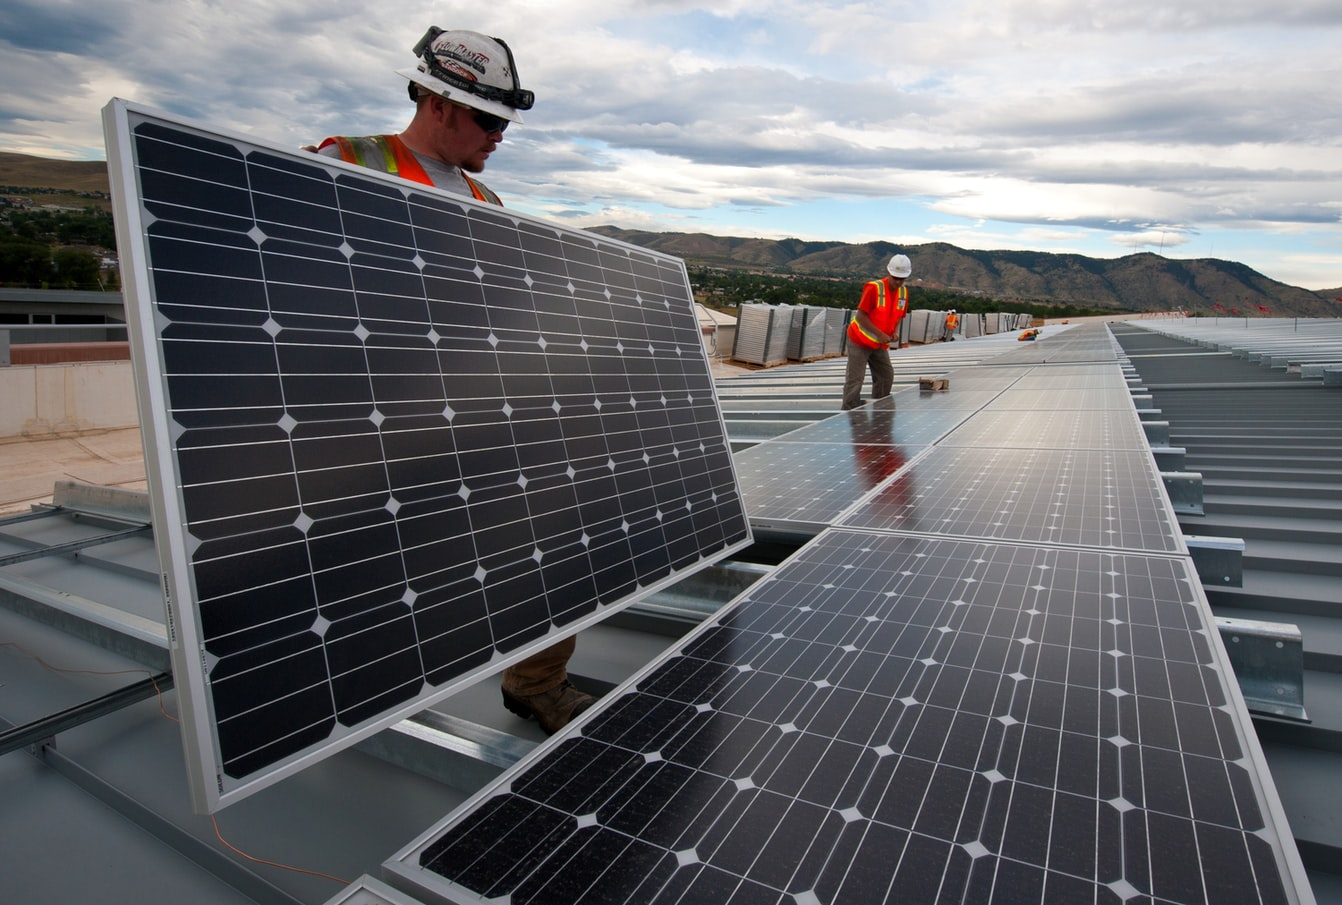 How Much Does It Cost to Install Solar Panels?